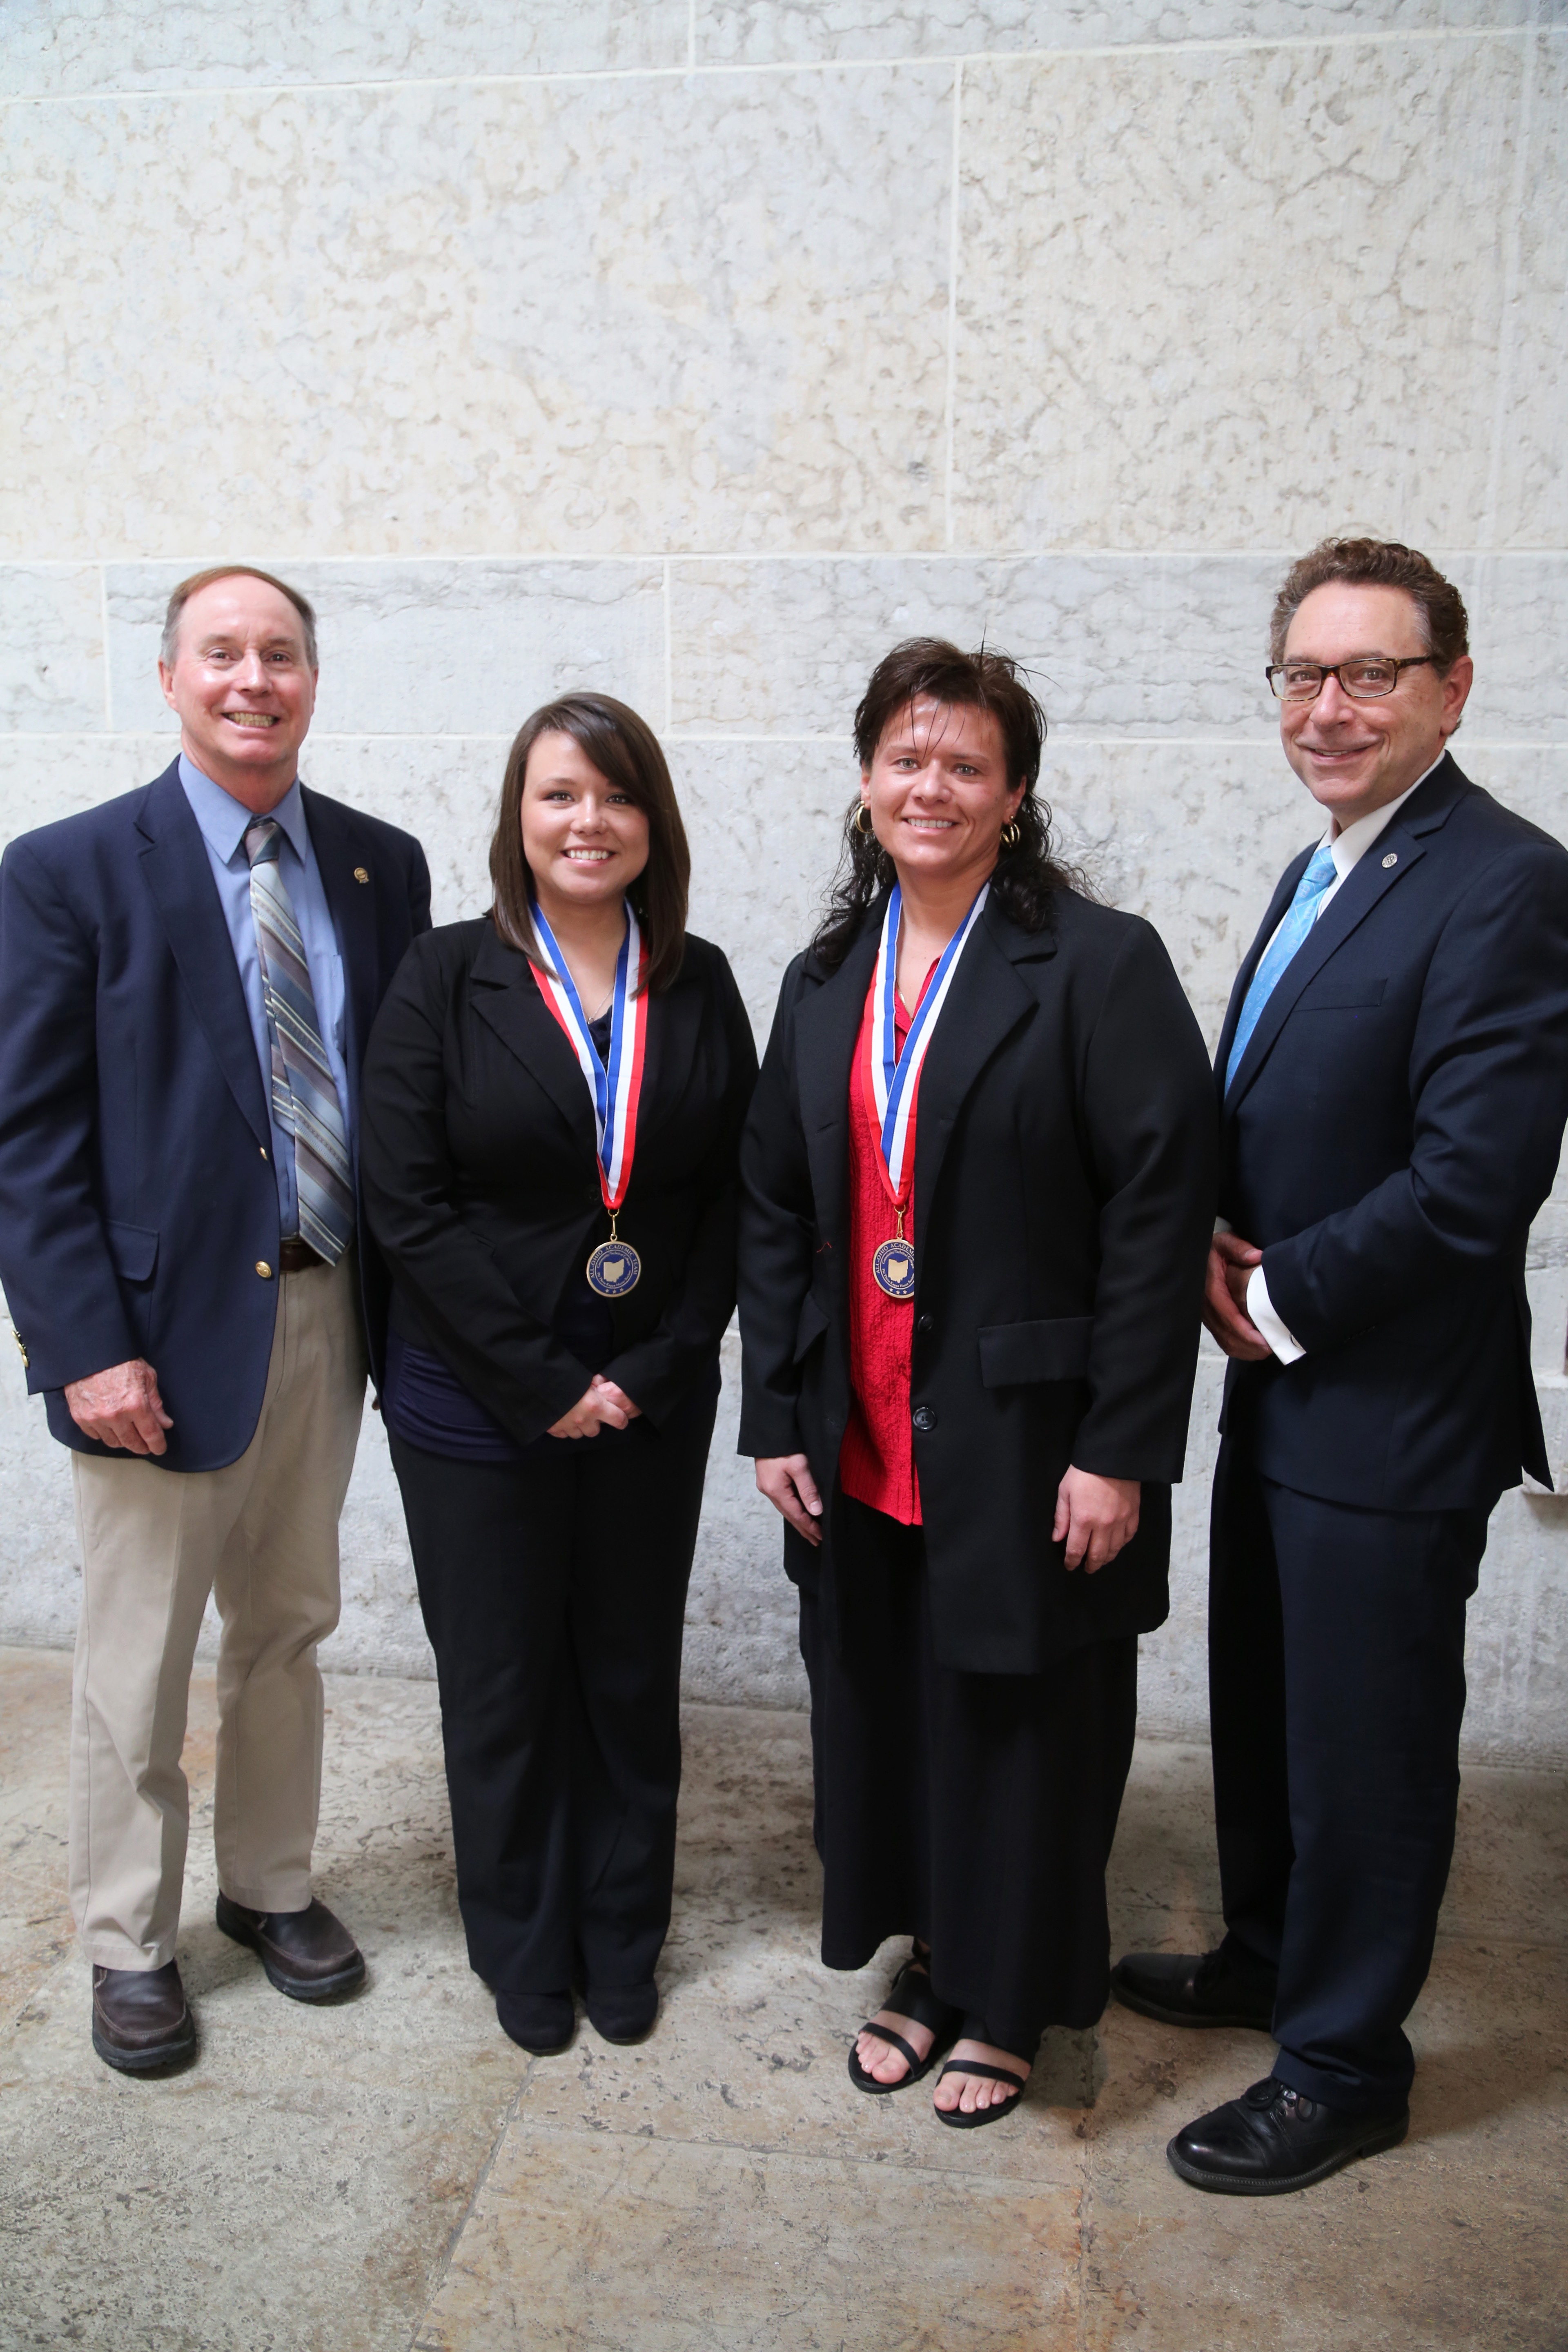 Pictured (left to right): Chuck Dawson, PTK Faculty Chair and Professor of Engineering, All-Ohio Academic Team Members Jenny Kurtzman and Cassandra Doolin, and Dr. Paul Gasparro, Belmont College President.